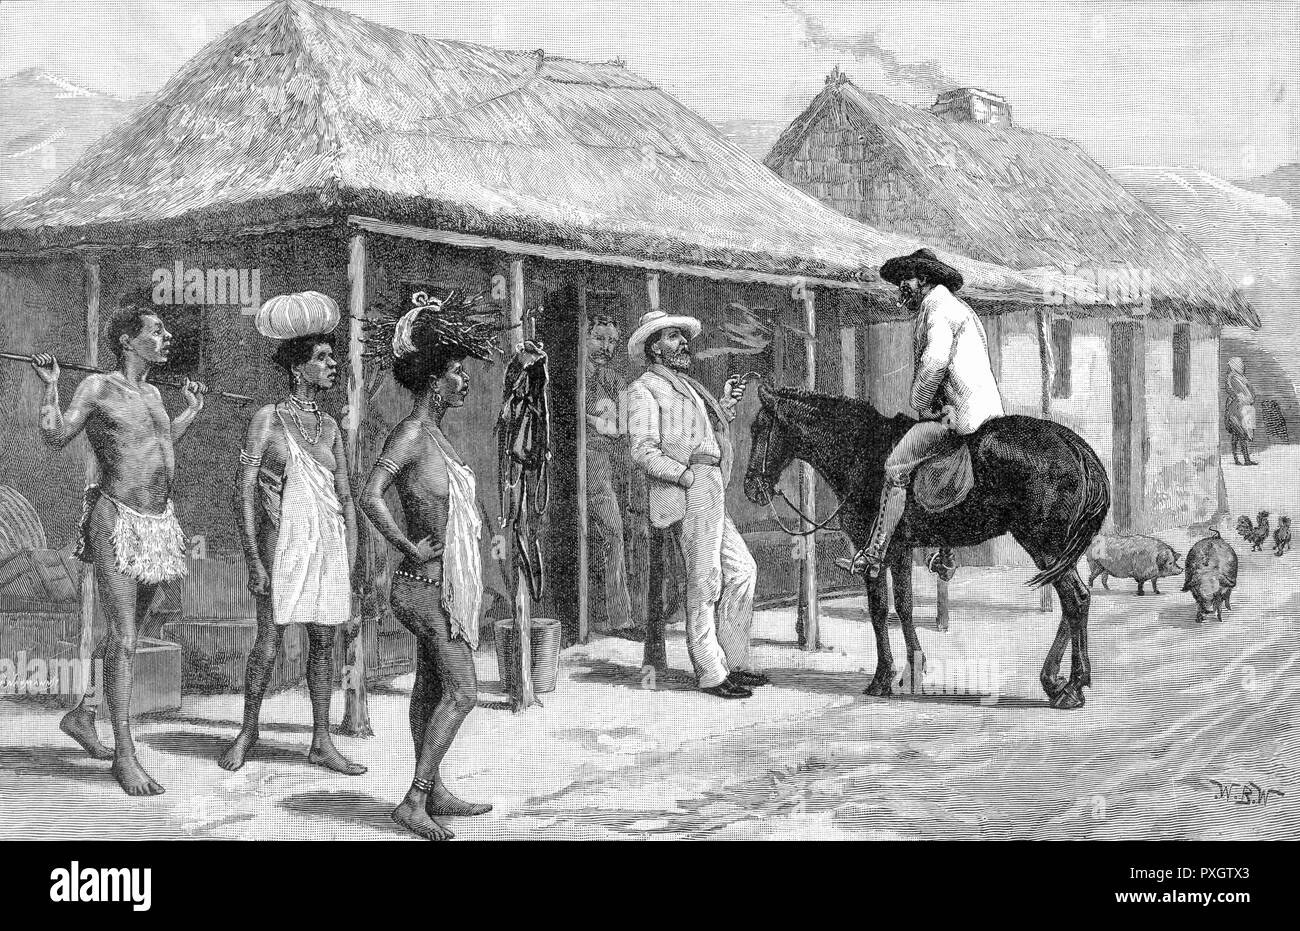 Traders and natives meet outside a store in Swaziland, south-east Africa       Date: 1889 - Stock Image